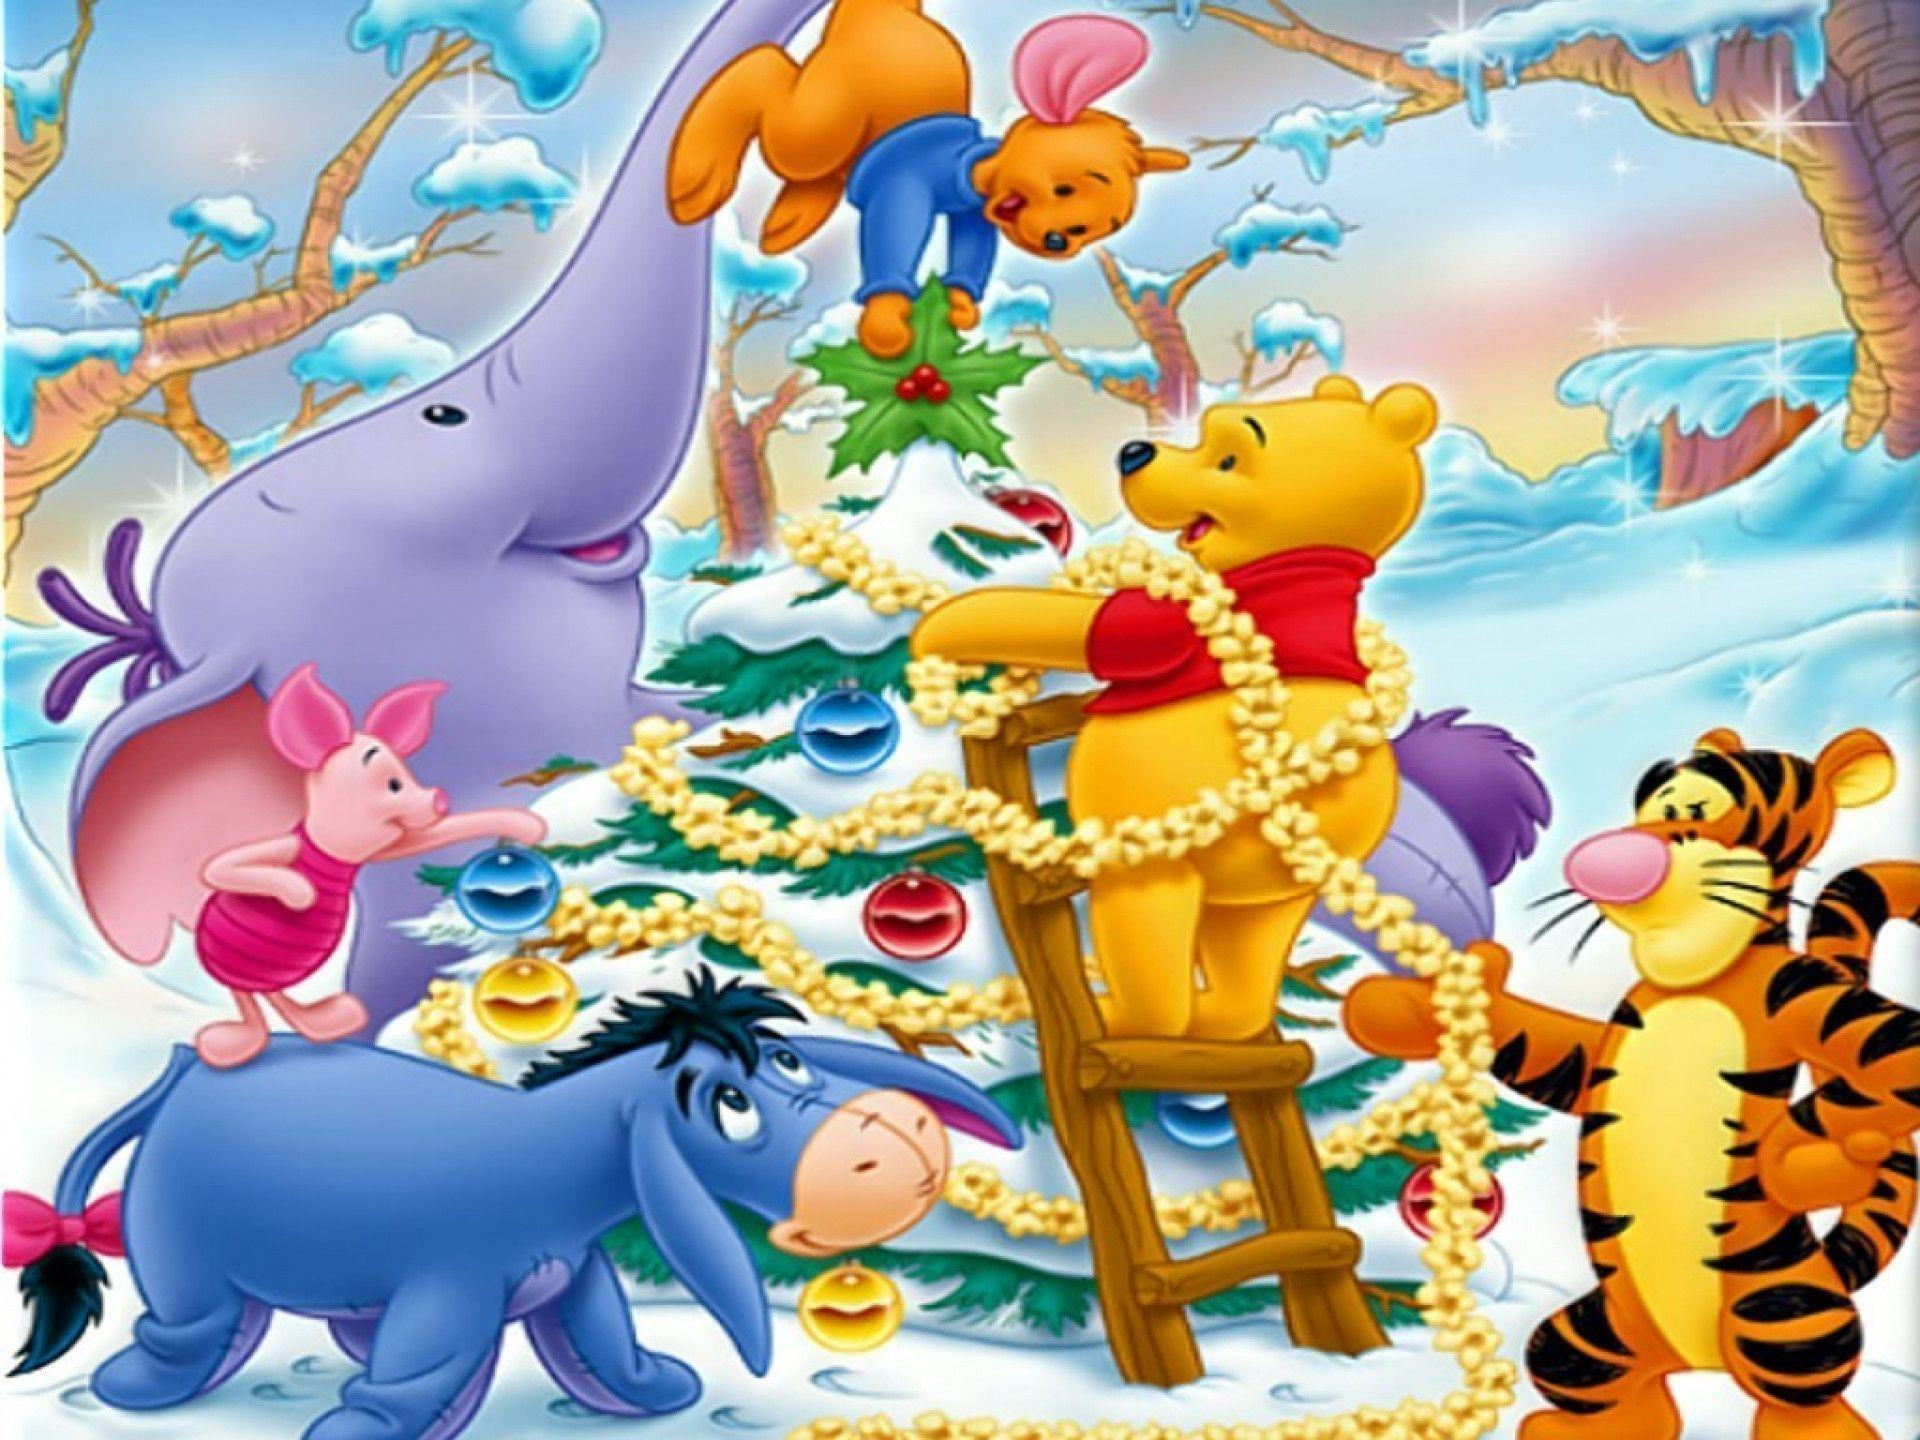 Winnie The Pooh Christmas Wallpapers - Wallpaper Cave